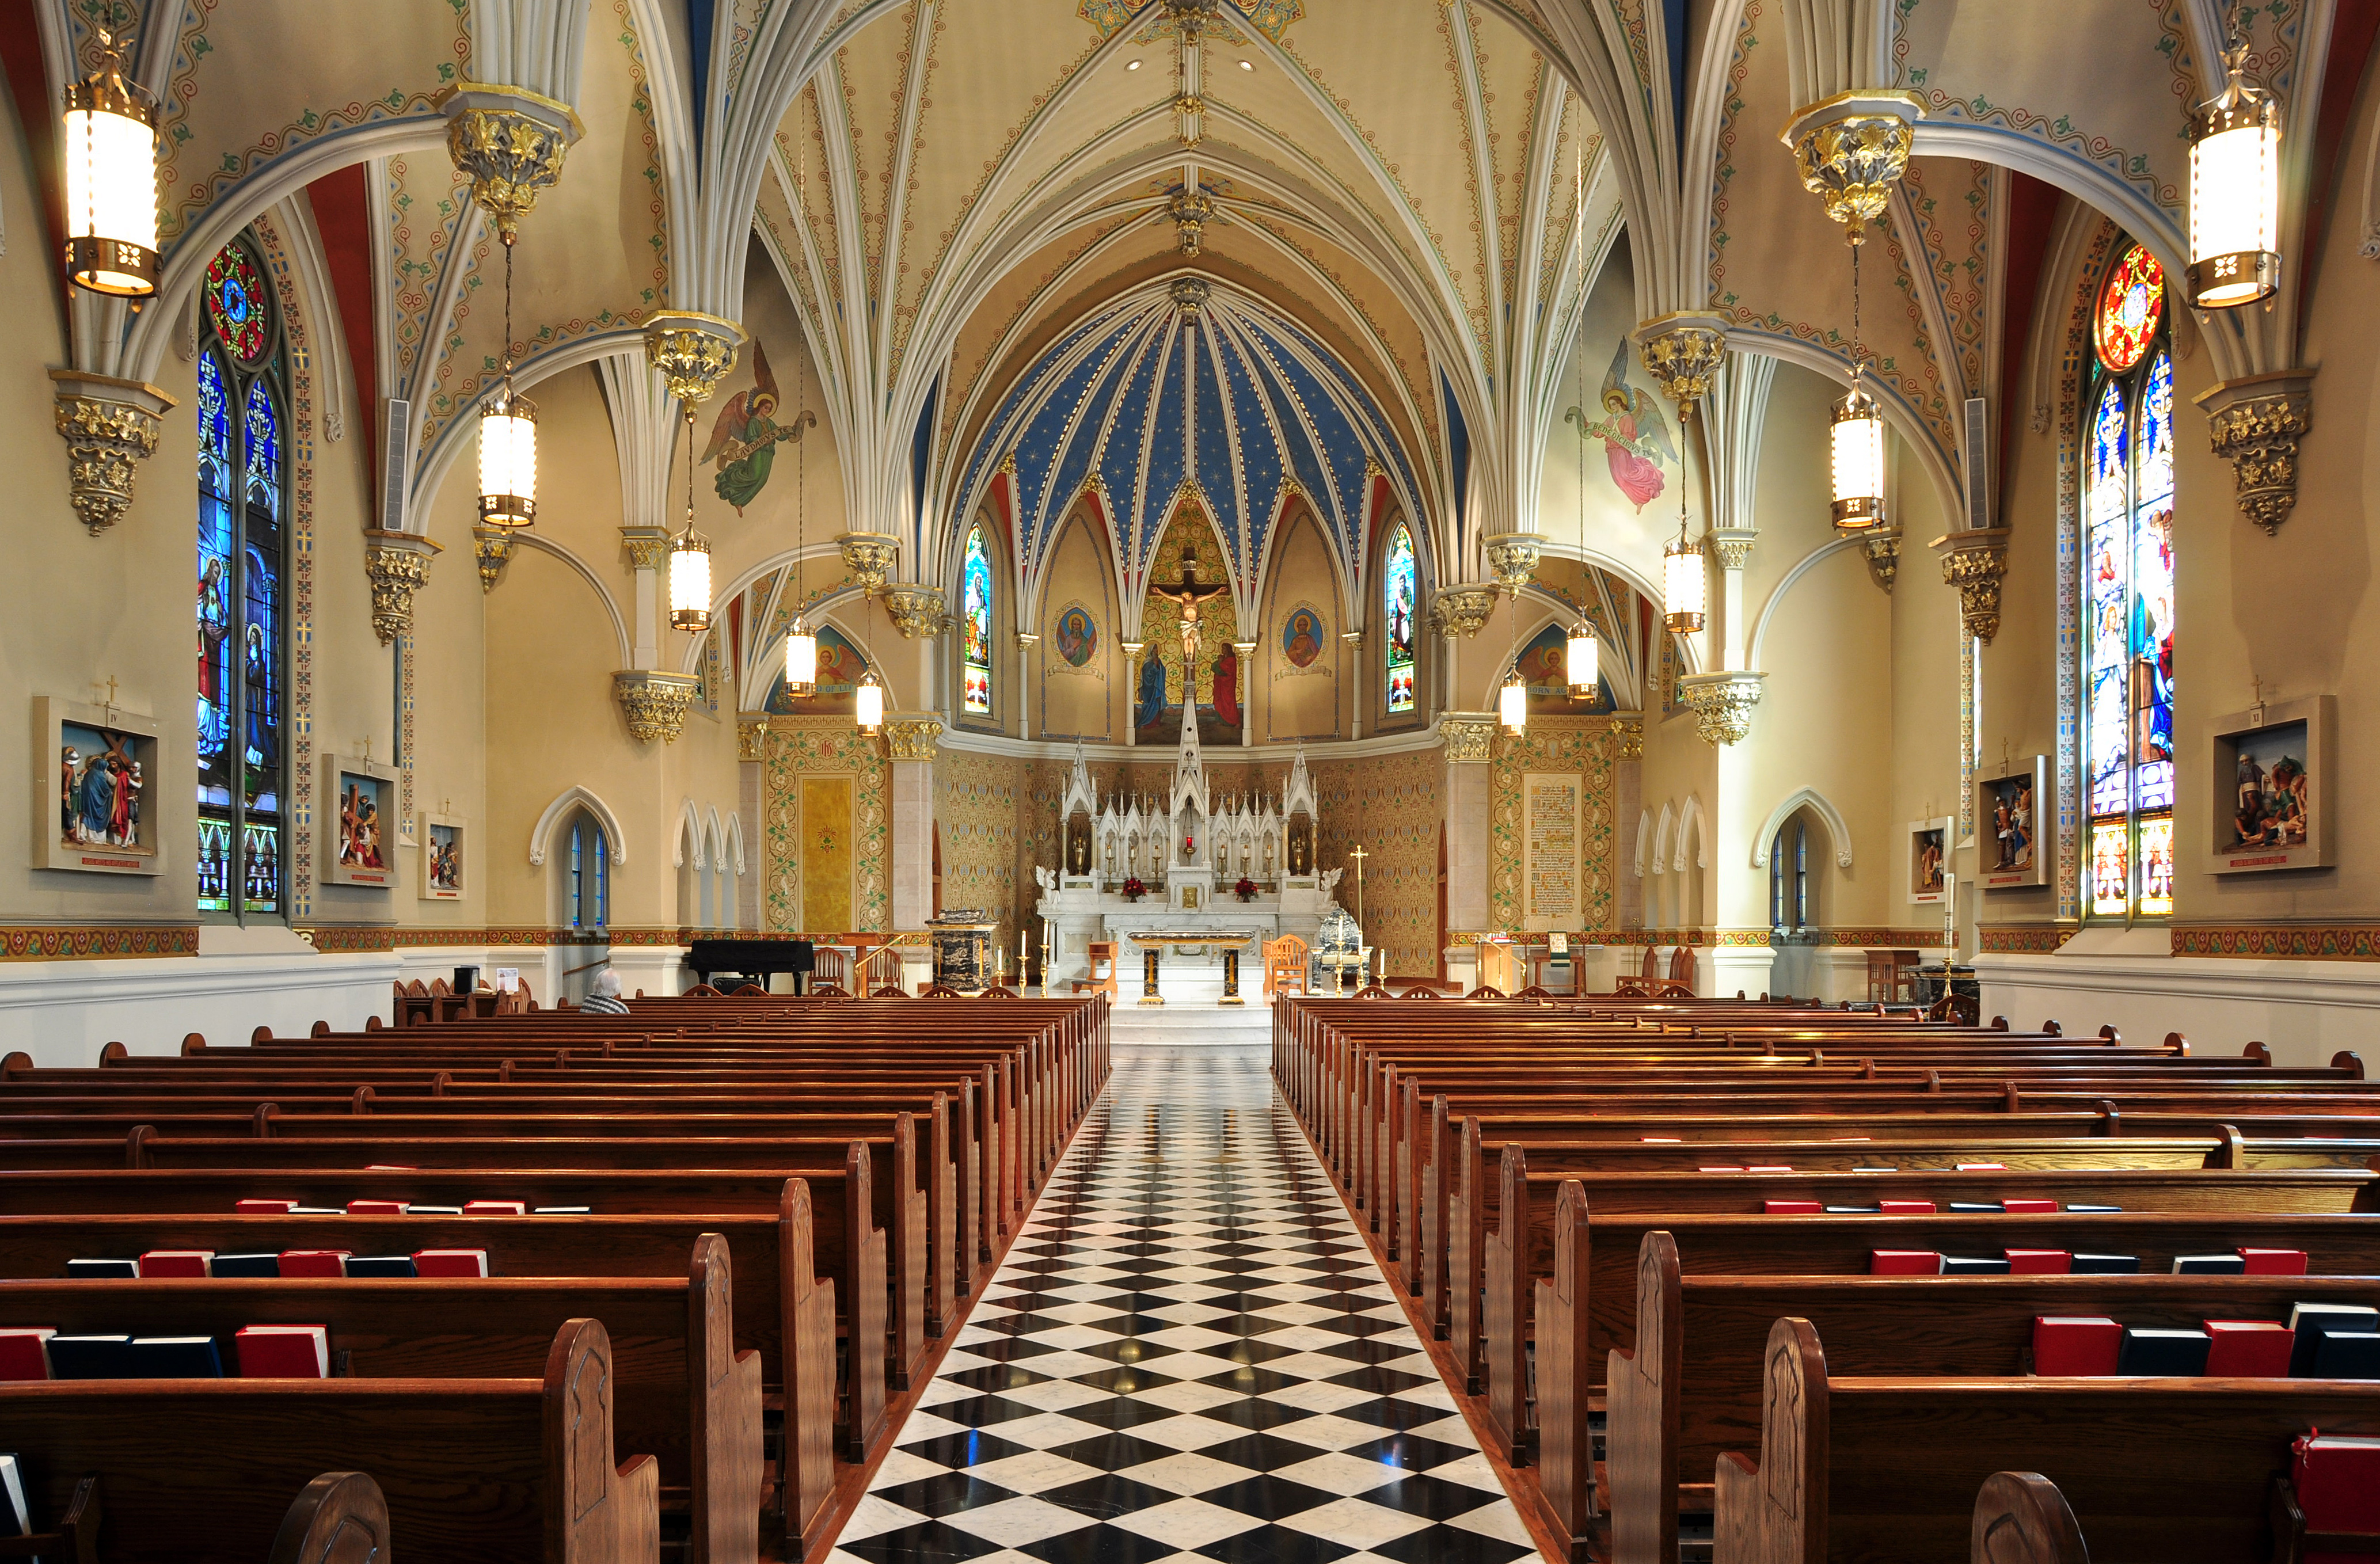 Church Interior Design 665.36 Kb